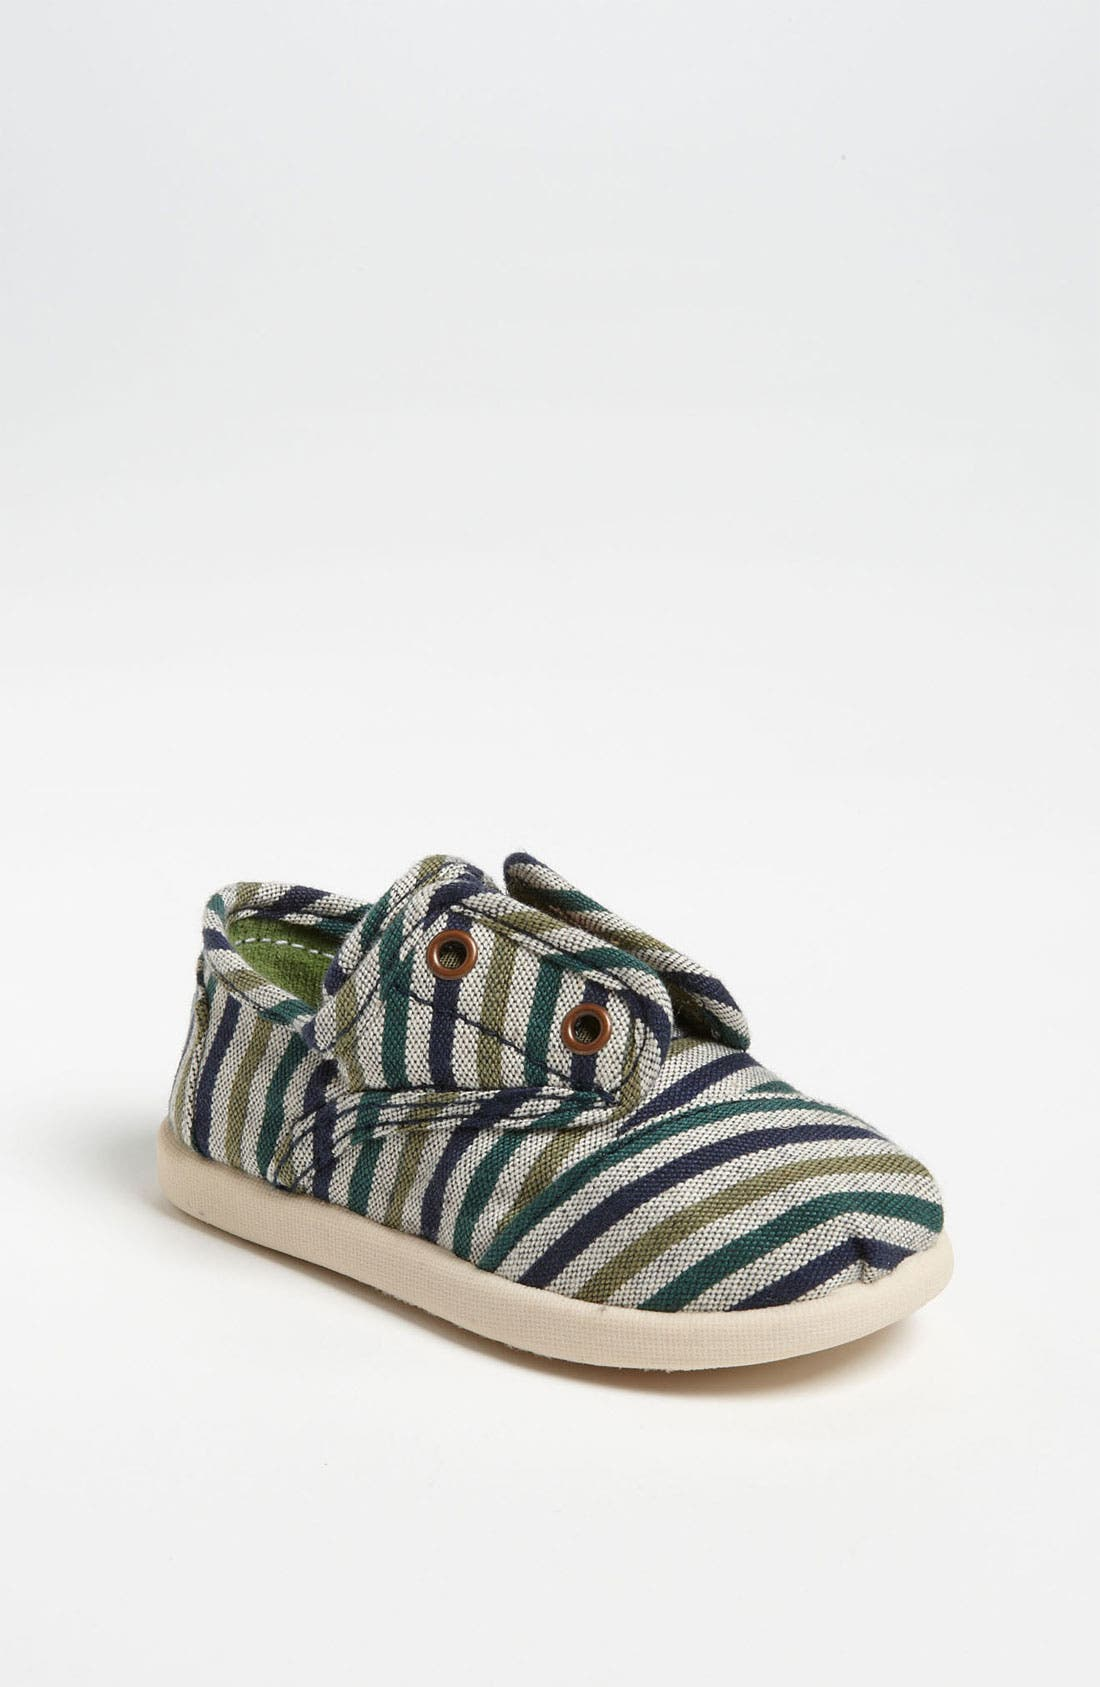 Alternate Image 1 Selected - TOMS 'Cordones Tiny - Renato' Slip-On (Baby, Walker & Toddler)